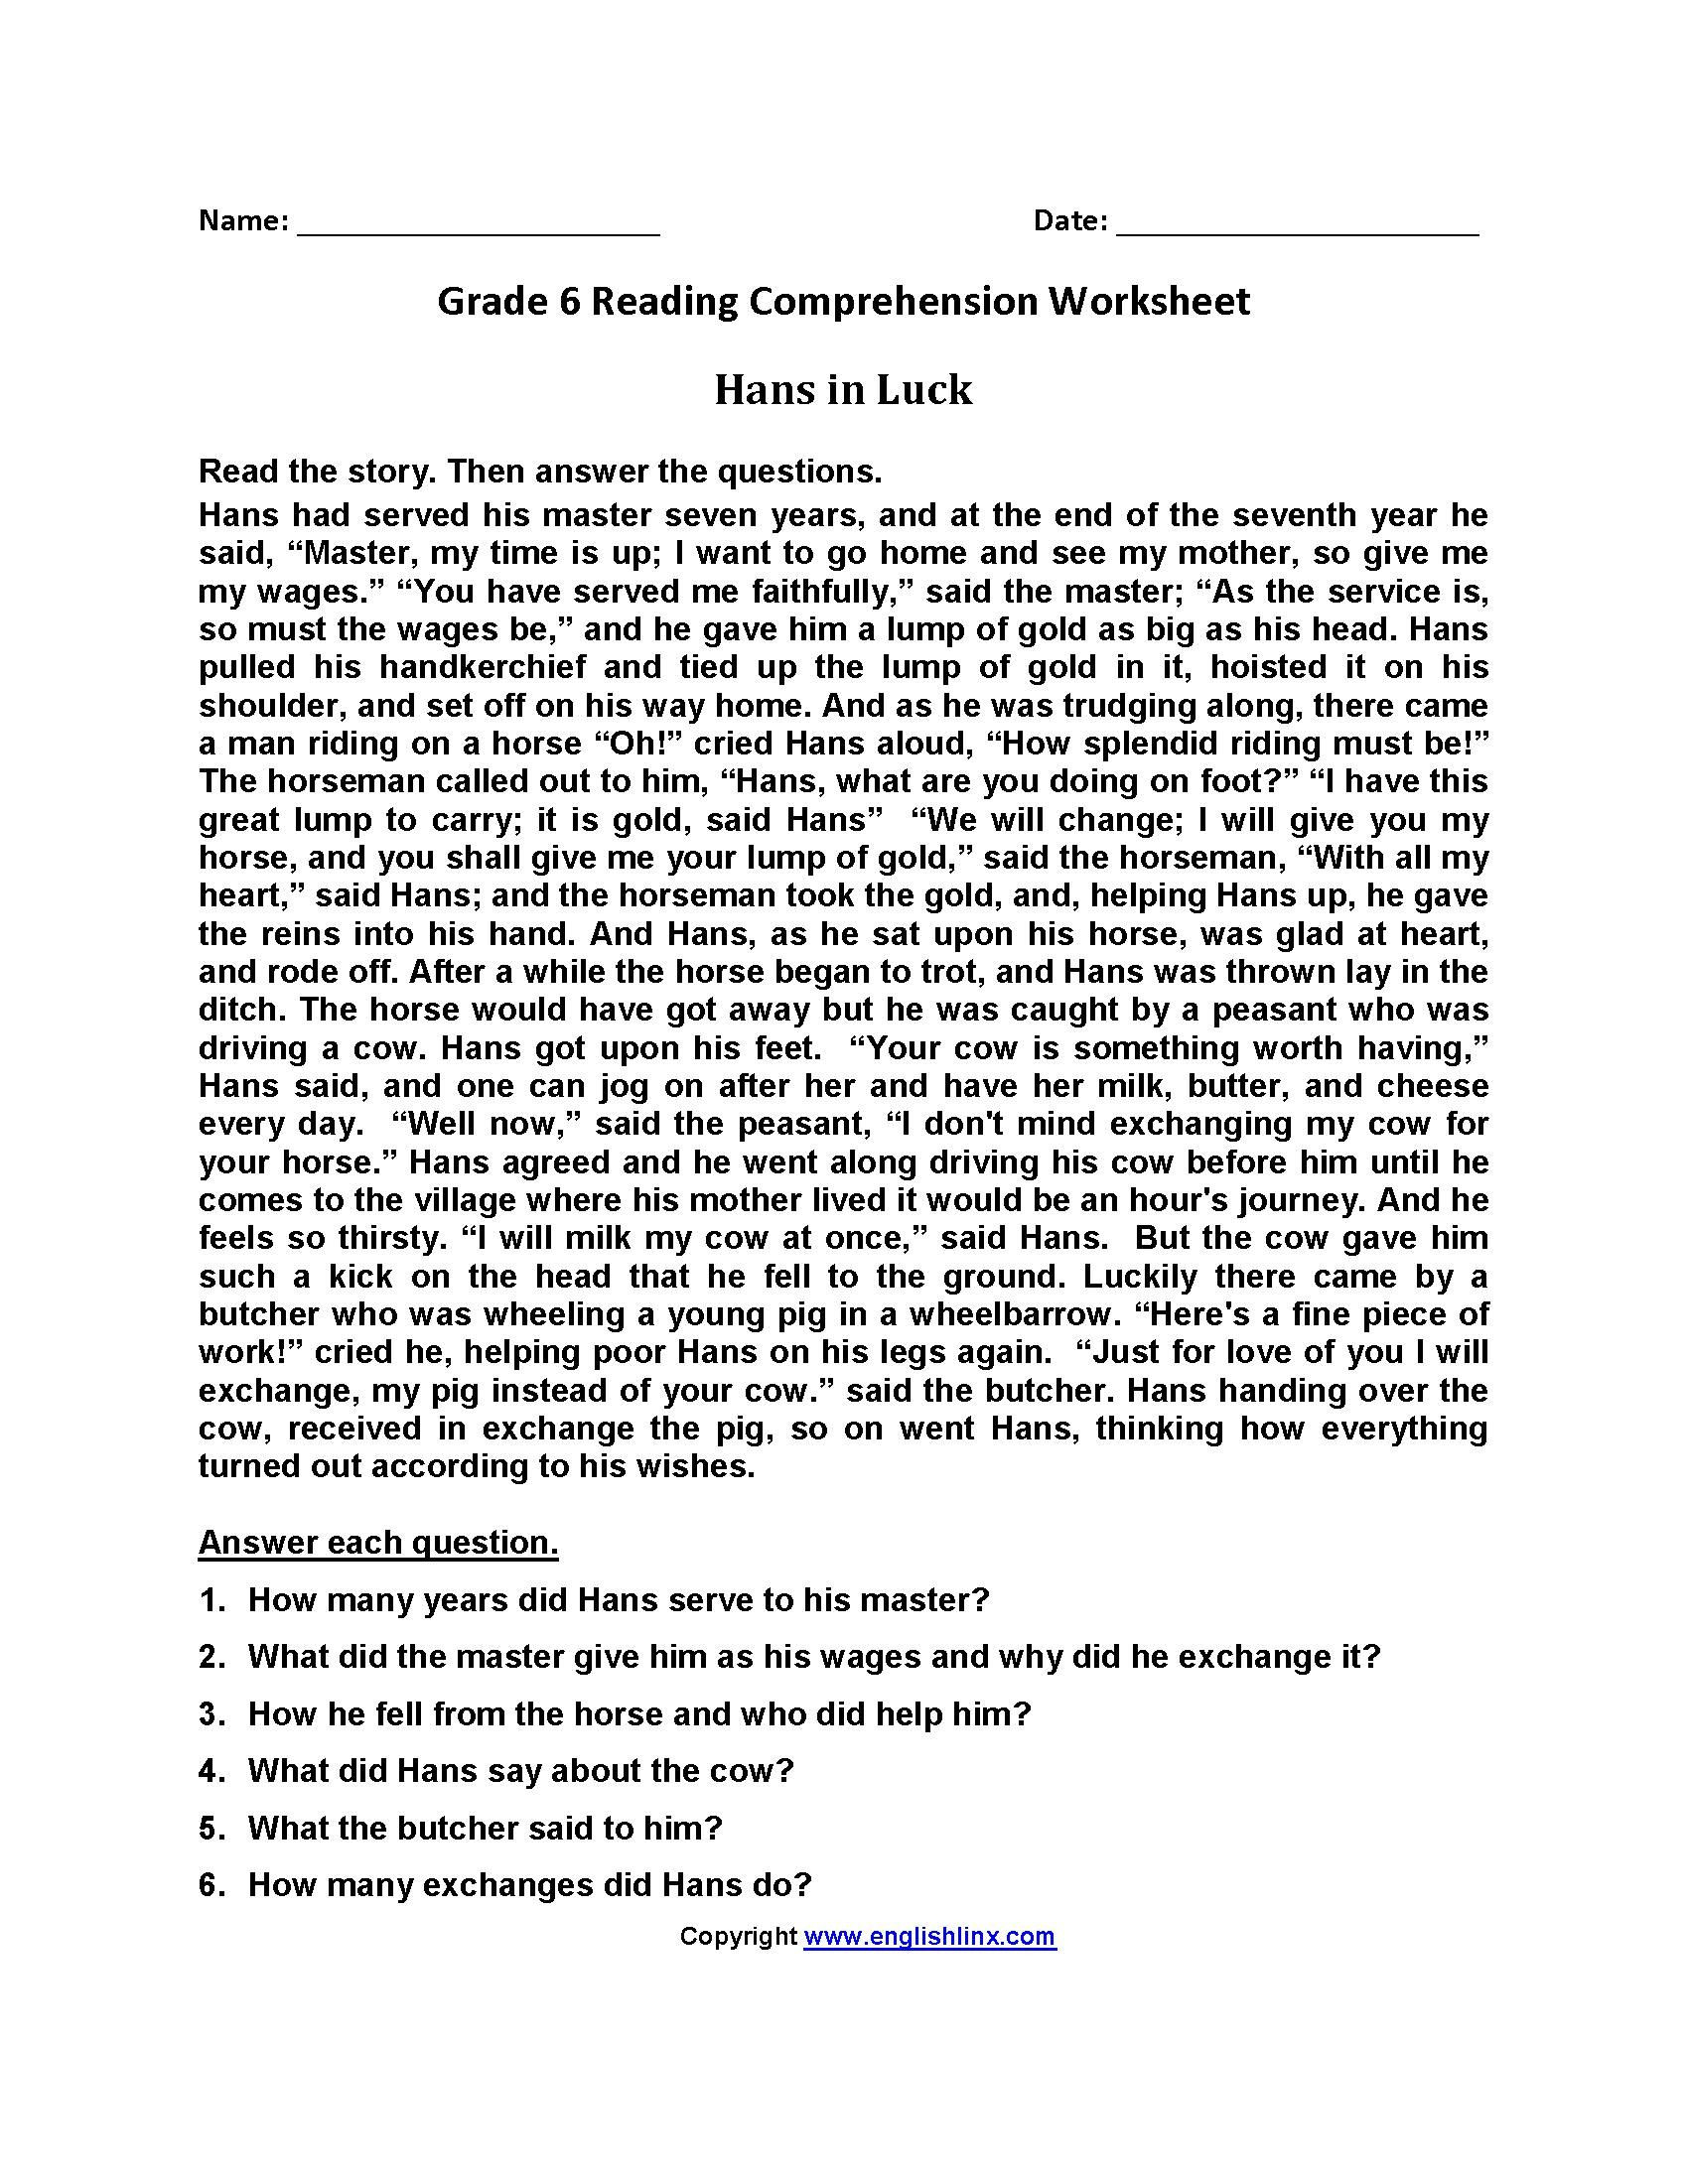 Comprehension Worksheets for Grade 6 Free Printable Reading Worksheets for Grade 6 In 2020